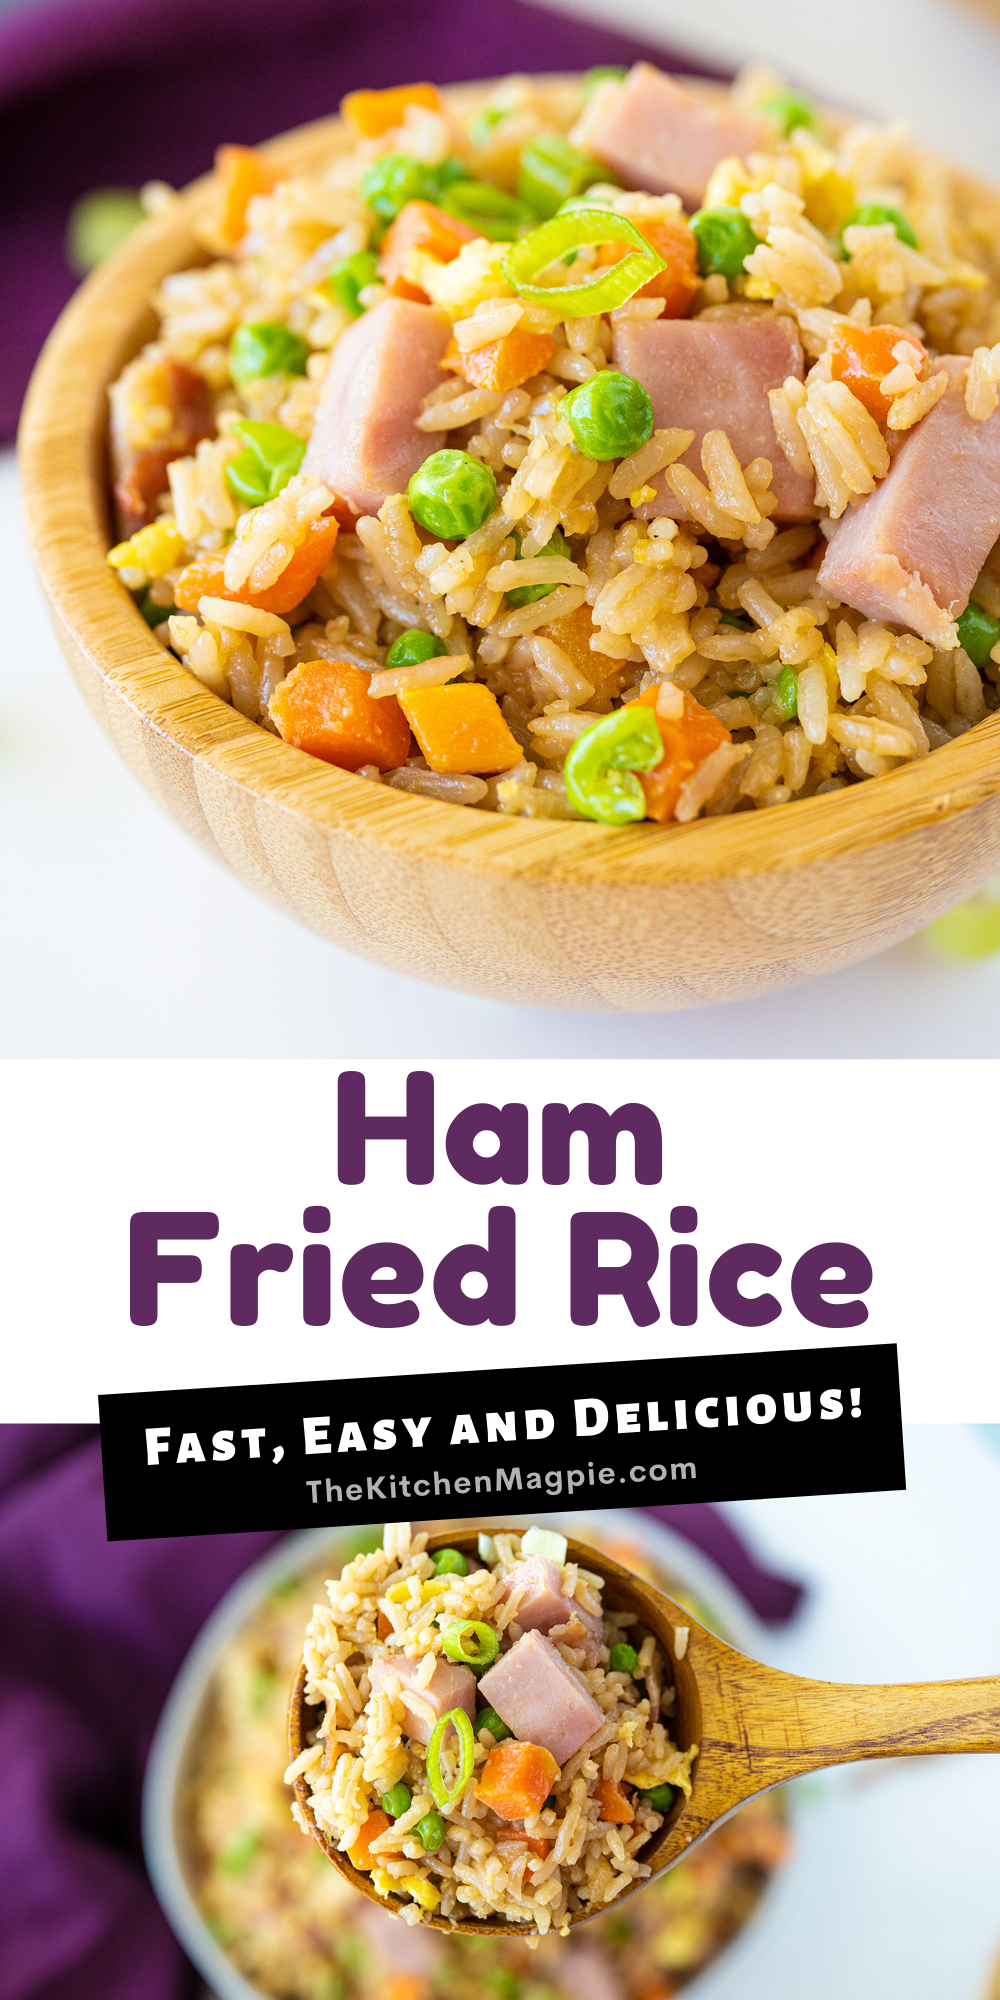 How to make fast, easy and deliciosu ham fried rice! This recipe is perfect for ham leftover and makes a great breakfast, lunch or dinner!